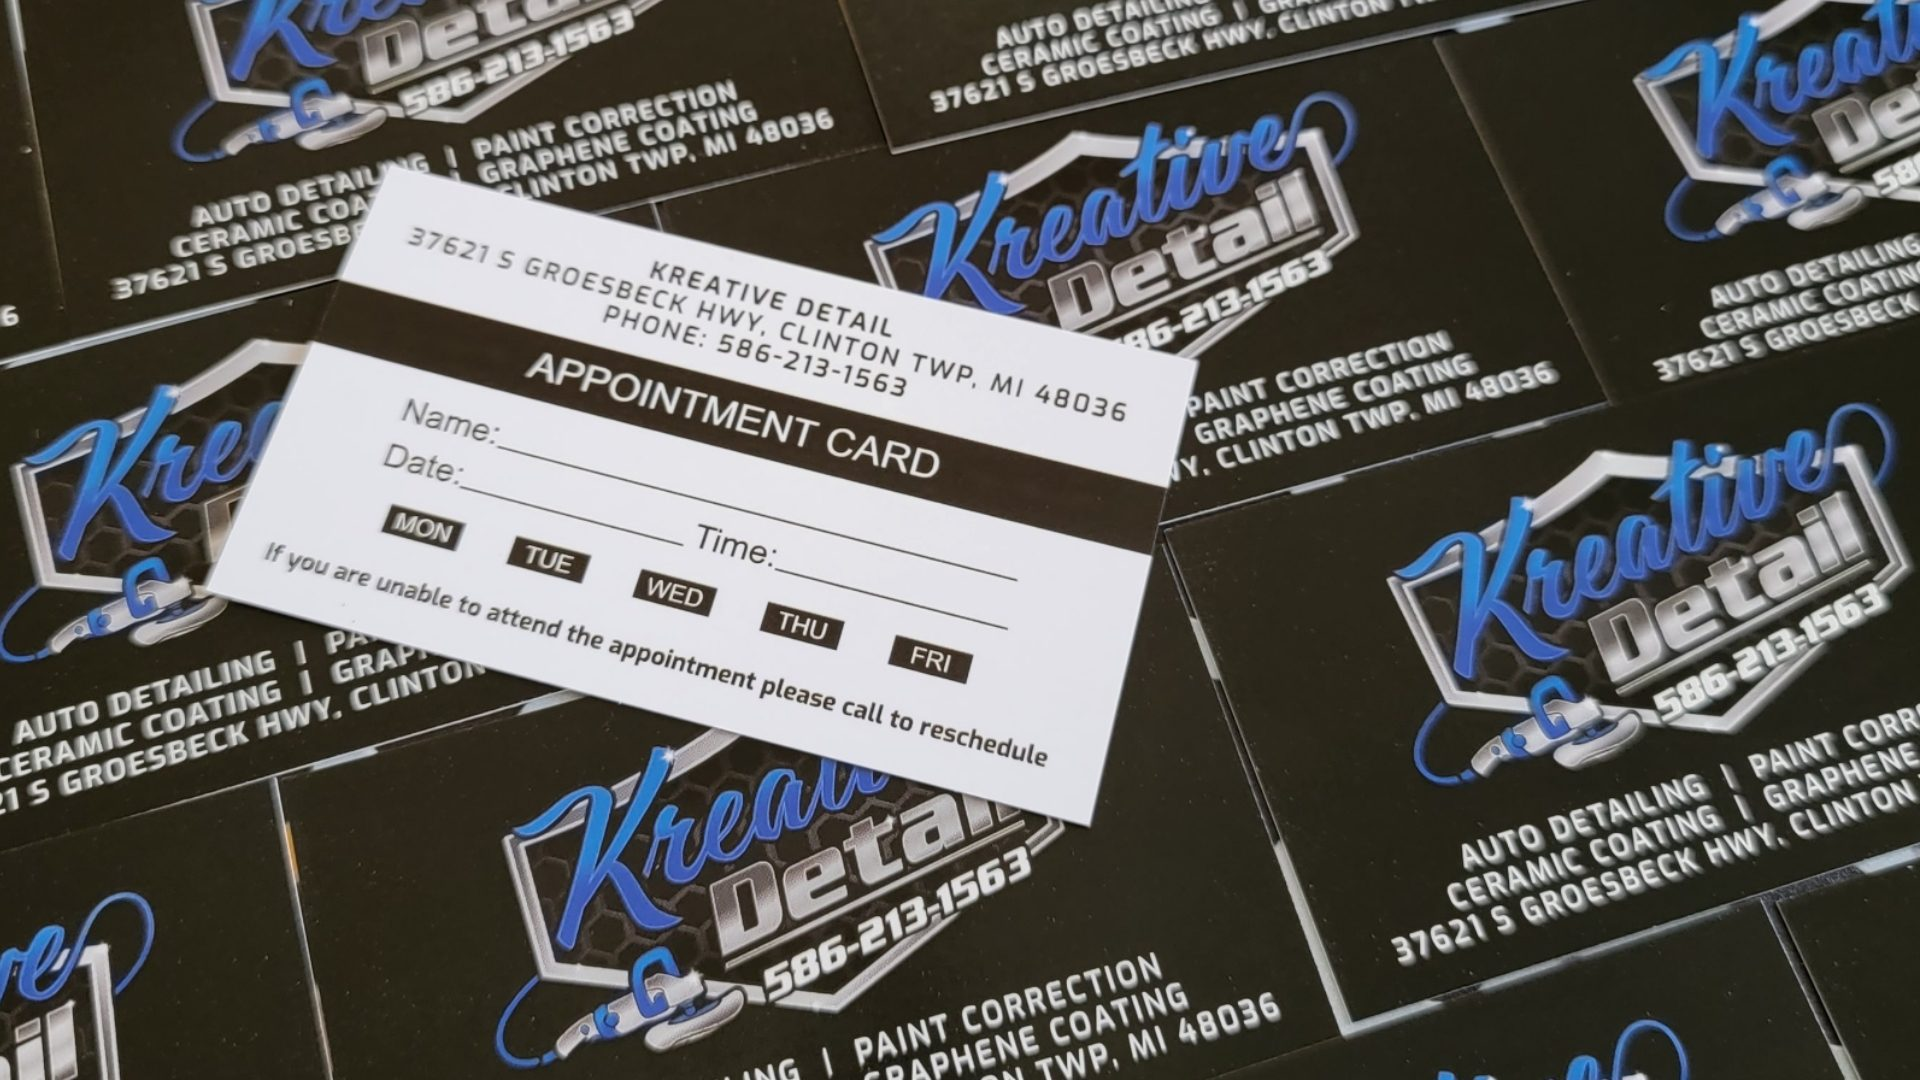 Auto Detailing Appointment Cards 1